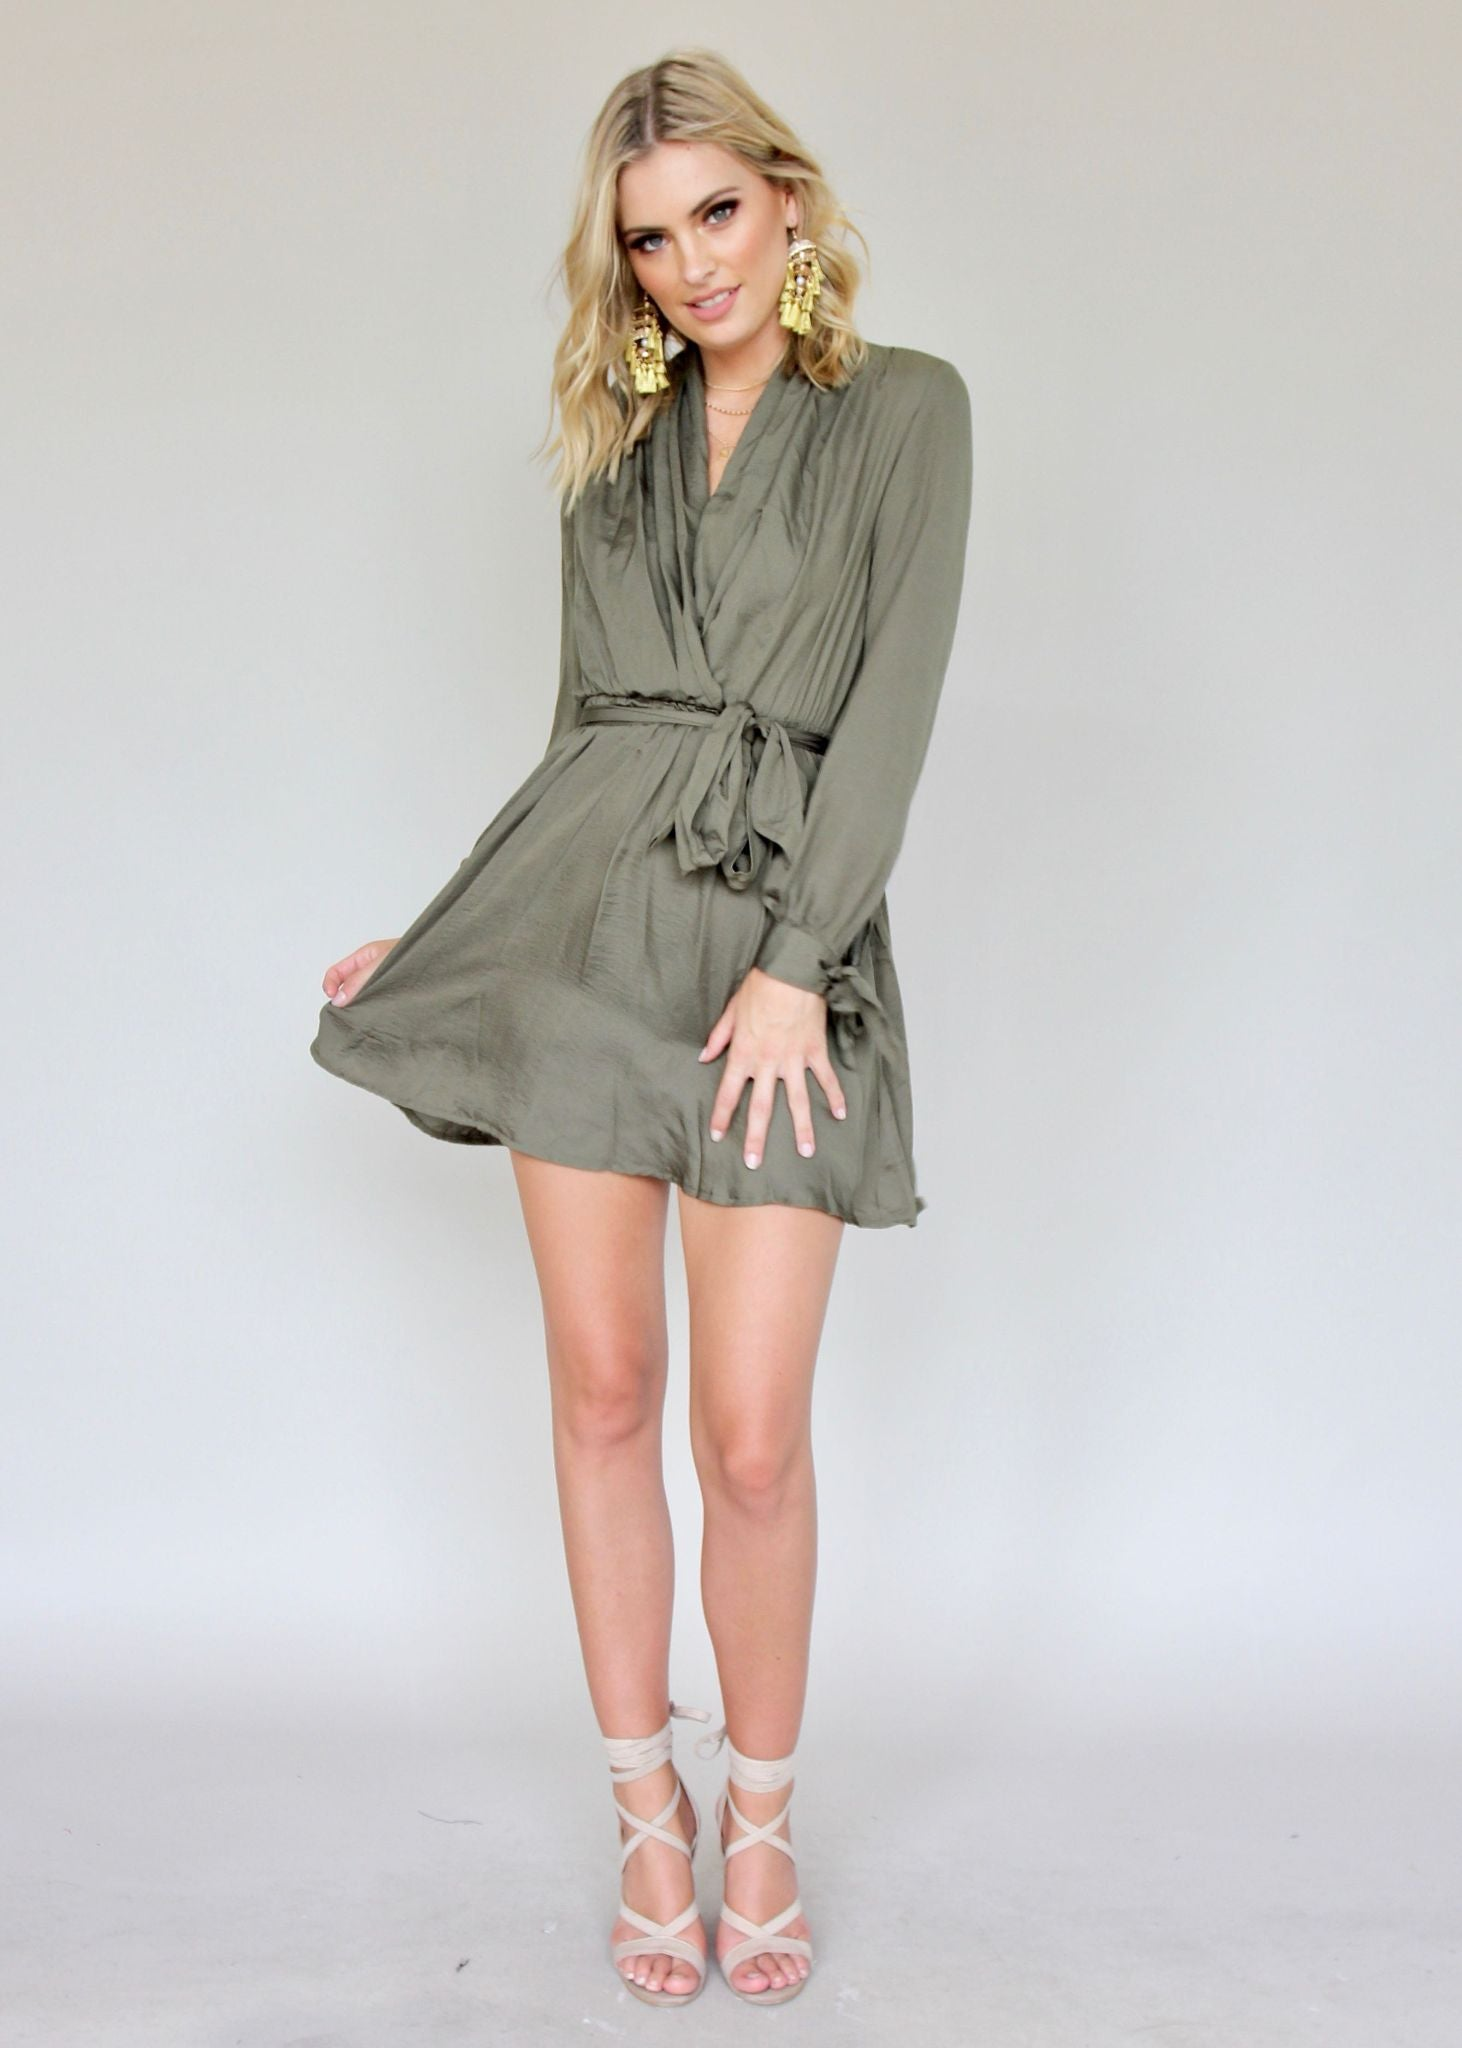 Summer Time Sun Dress - Khaki